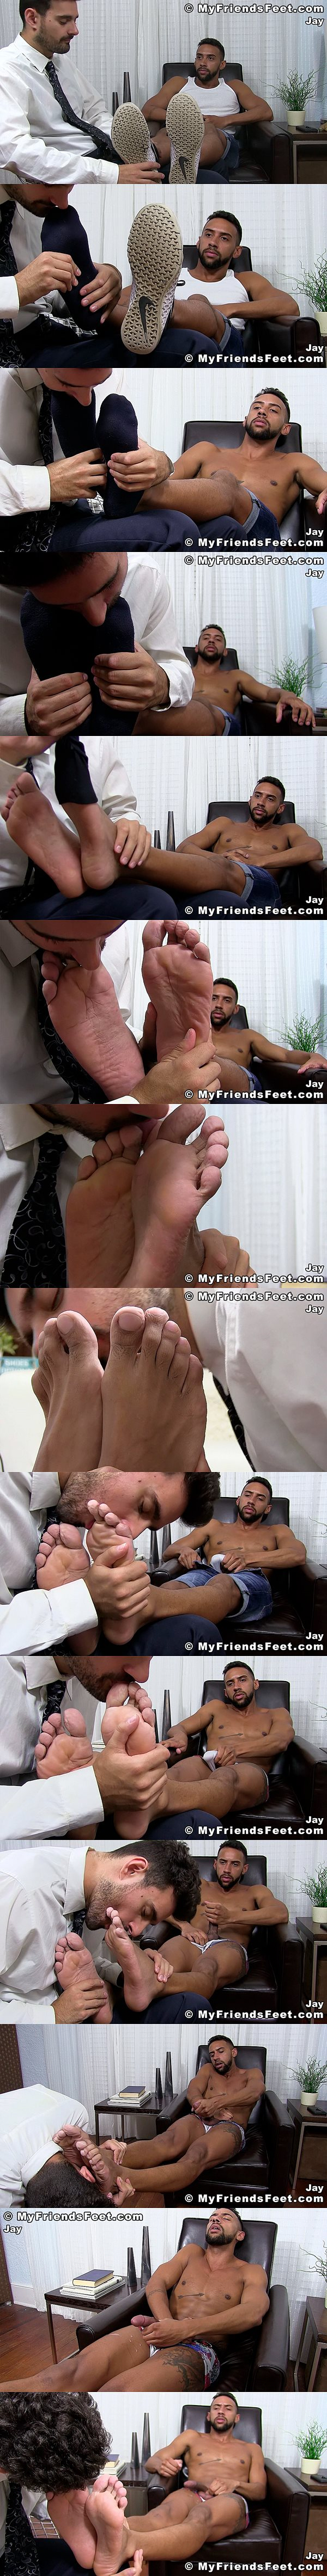 Myfriendsfeet - Undercover Boss Jay Alexander Worshiped 02